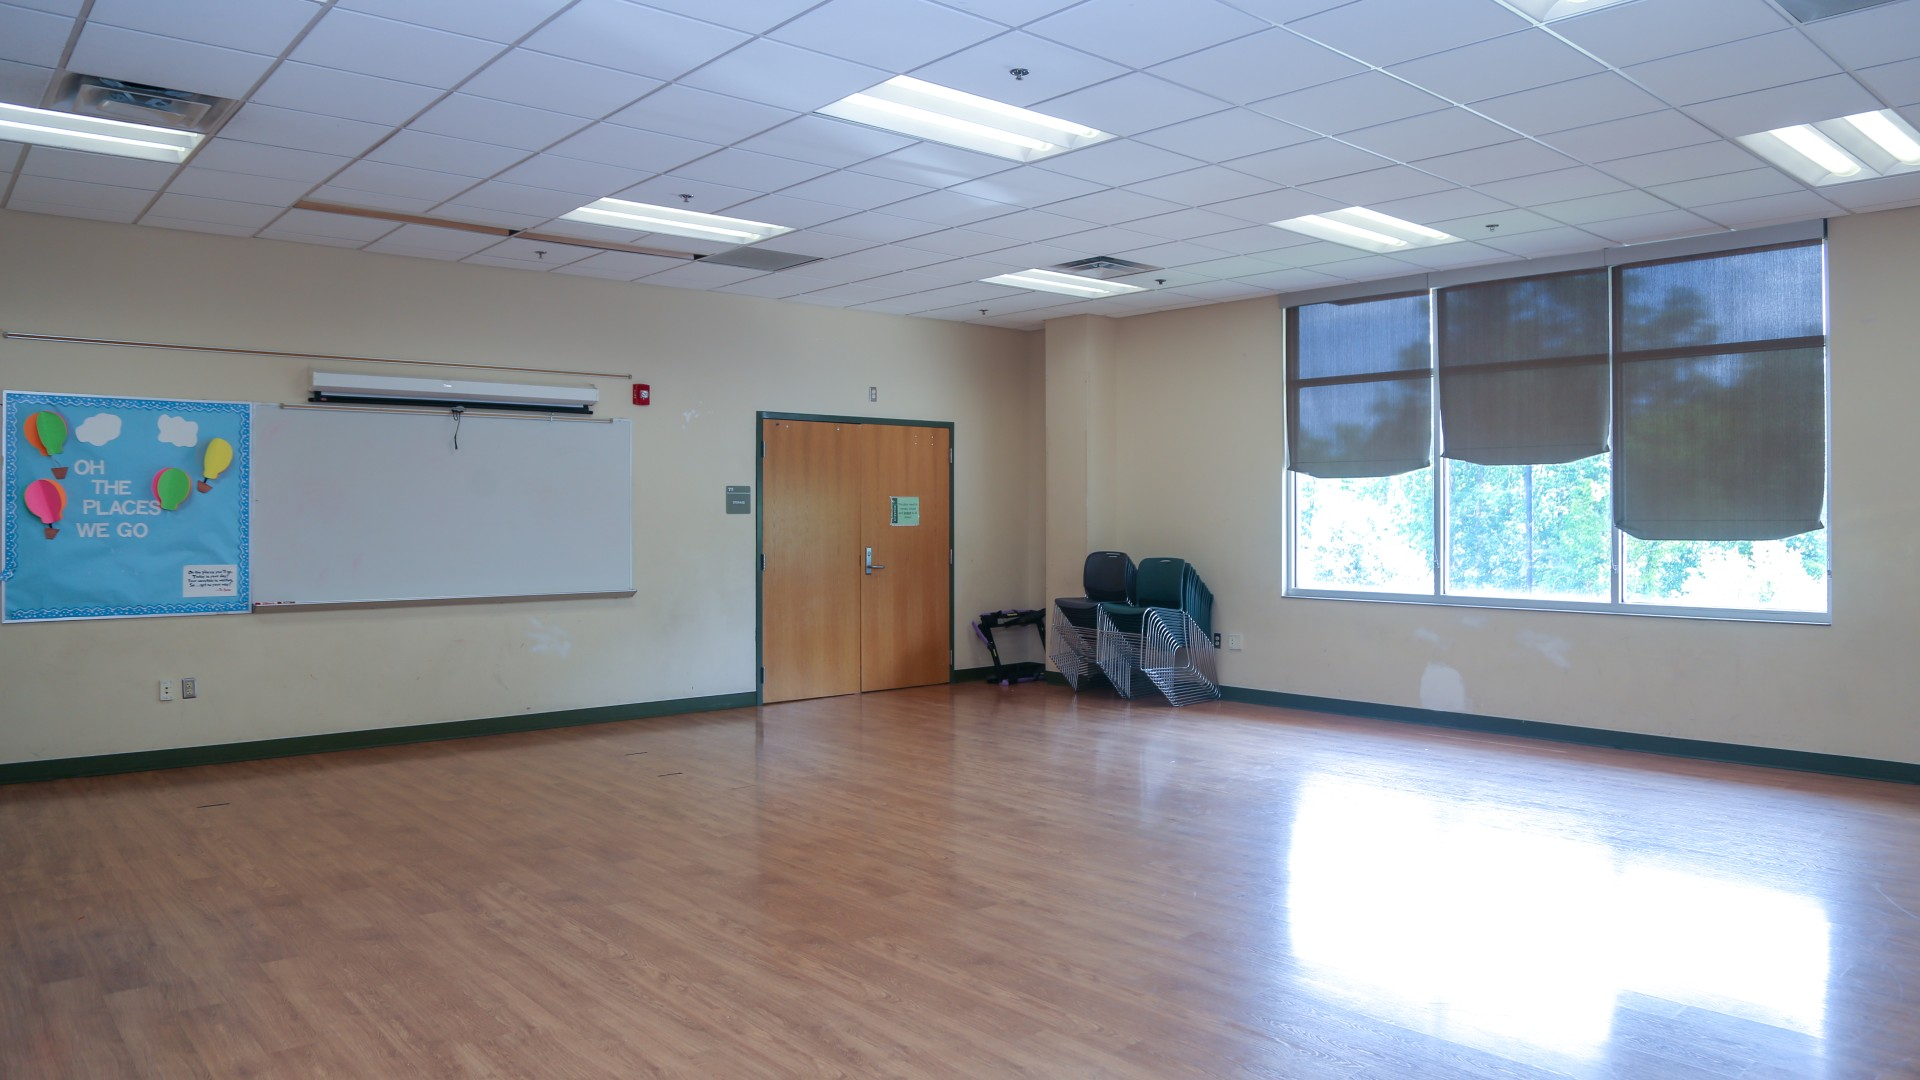 A large open multi-purpose room with a bulletin board and white board